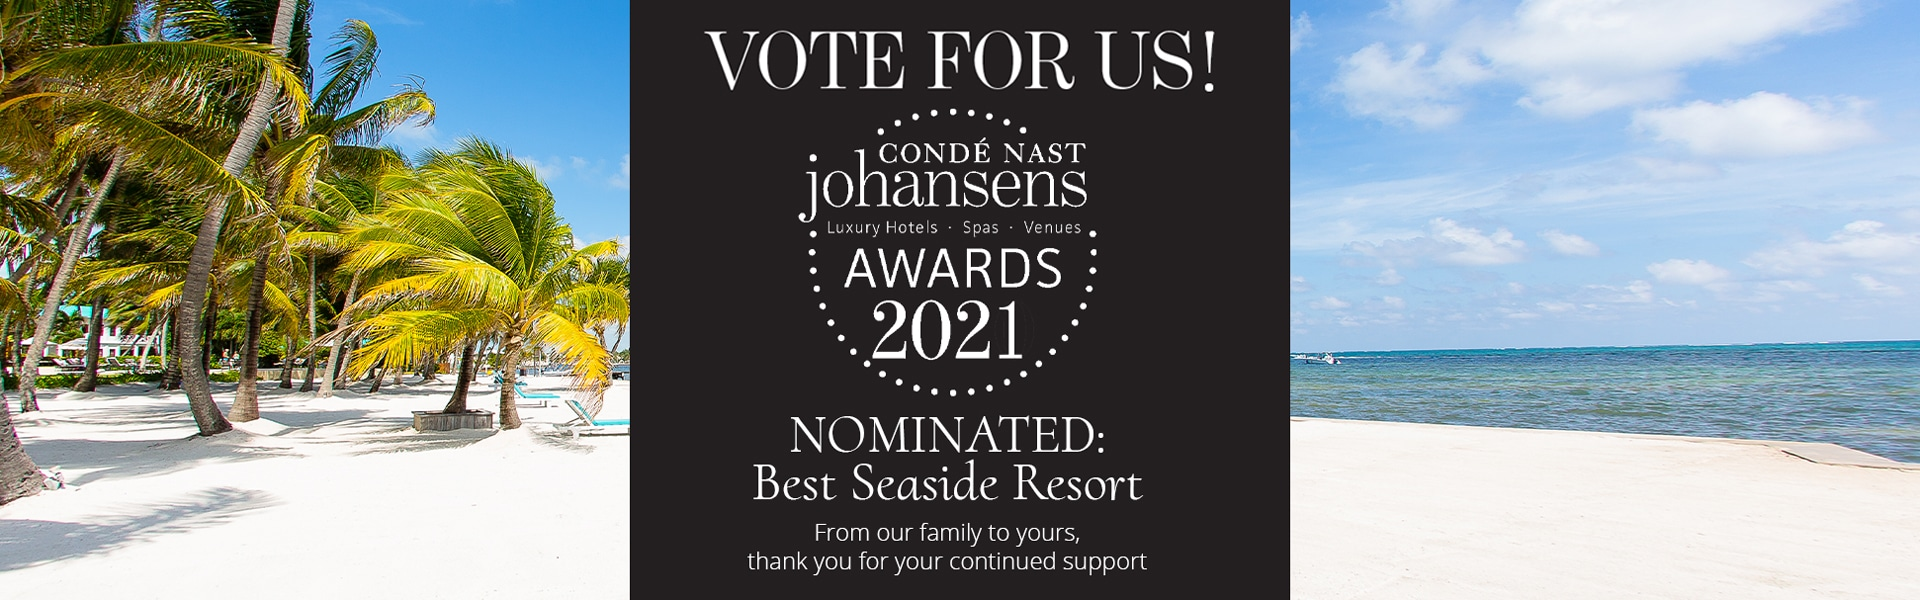 Conde Nast Johansen's vote for us square with beach in Belize in background